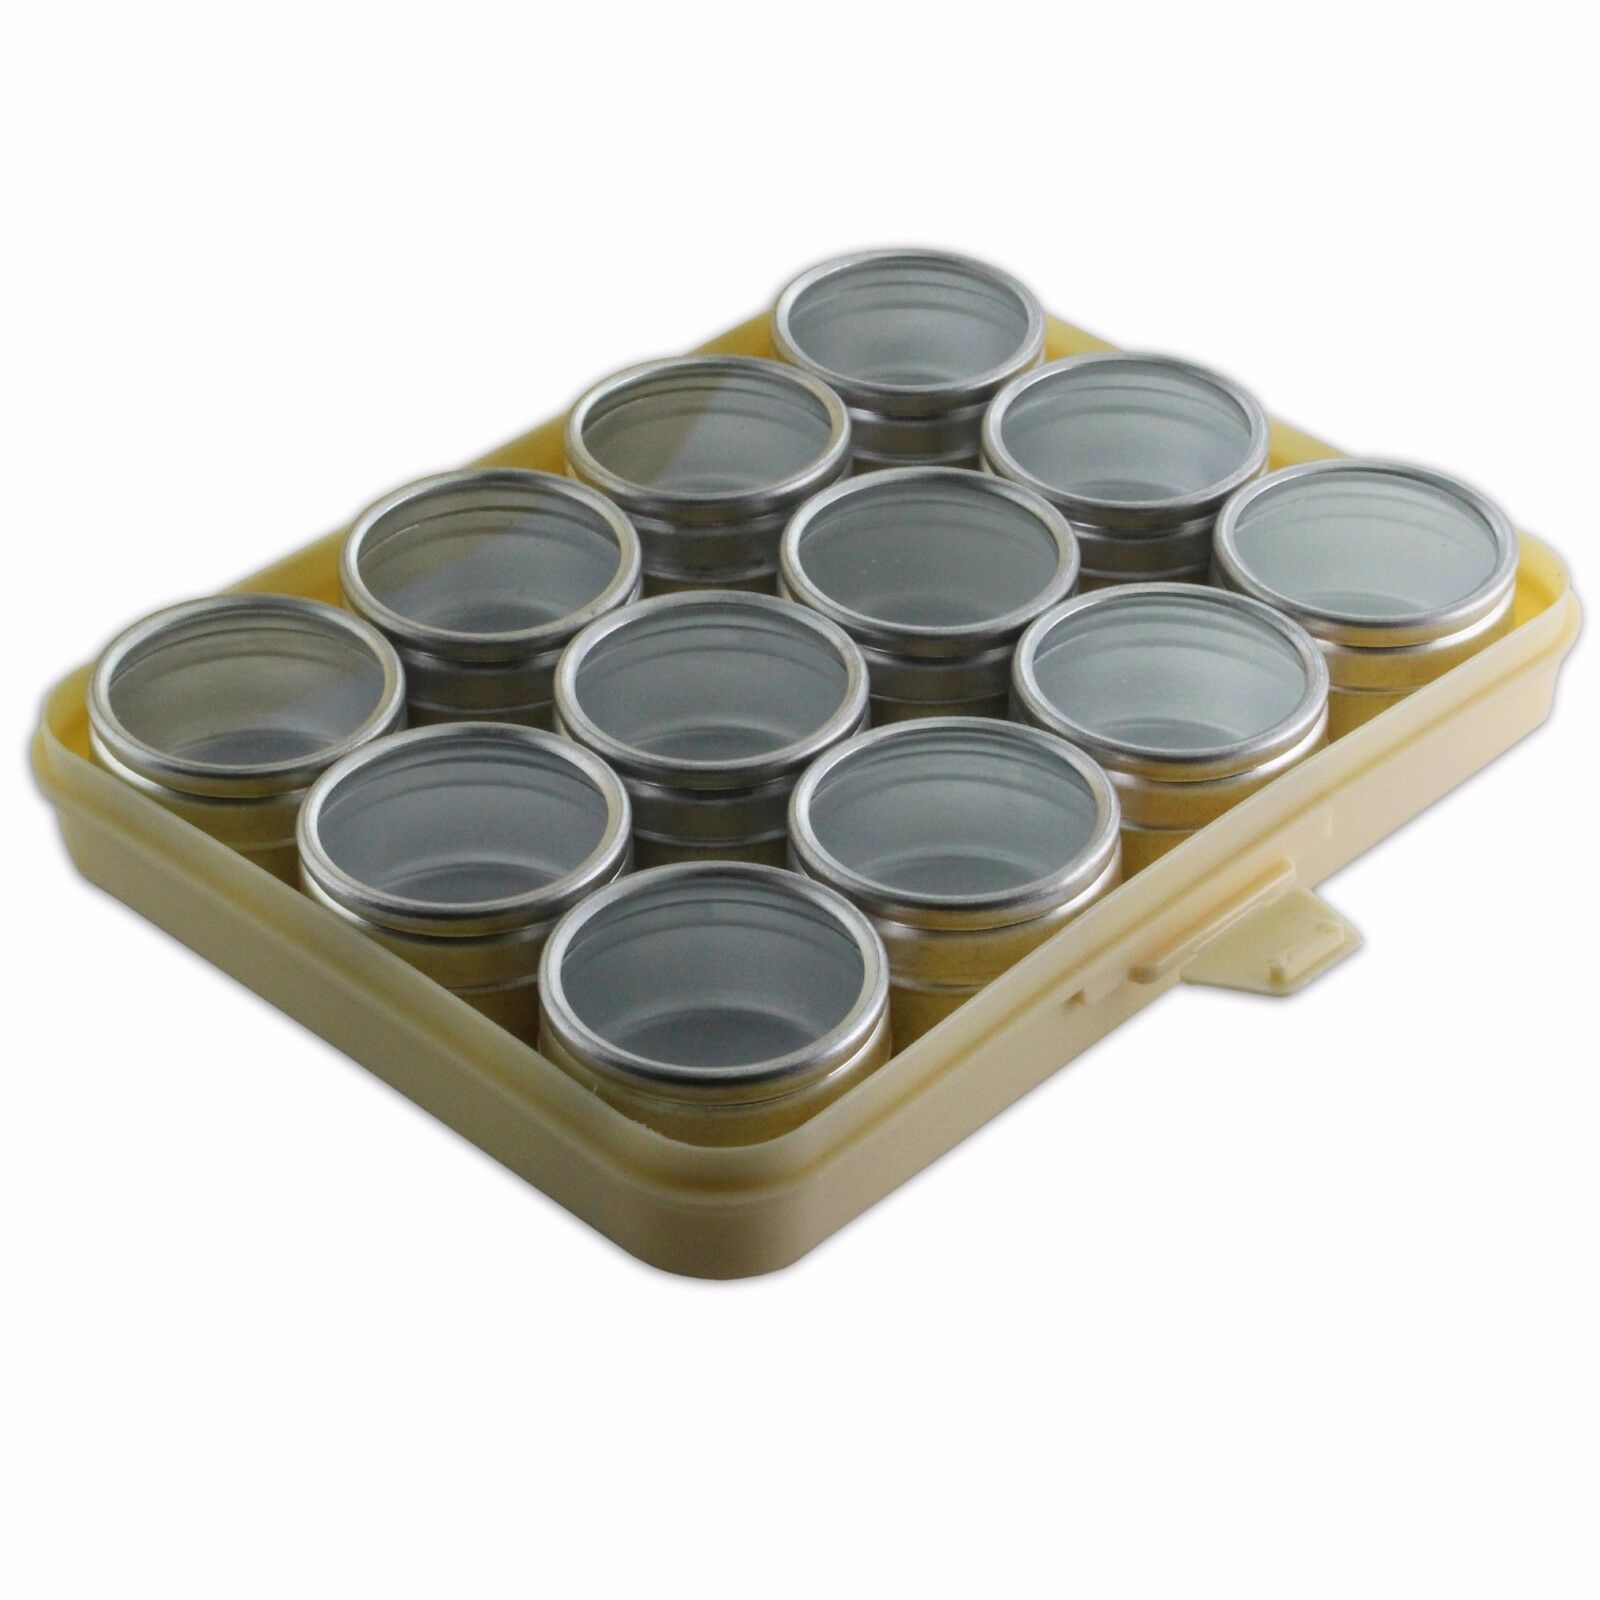 1x Aluminium 12 Clear Storage Boxes in Tray 53mm Dia Pots Findings S7539 Beads